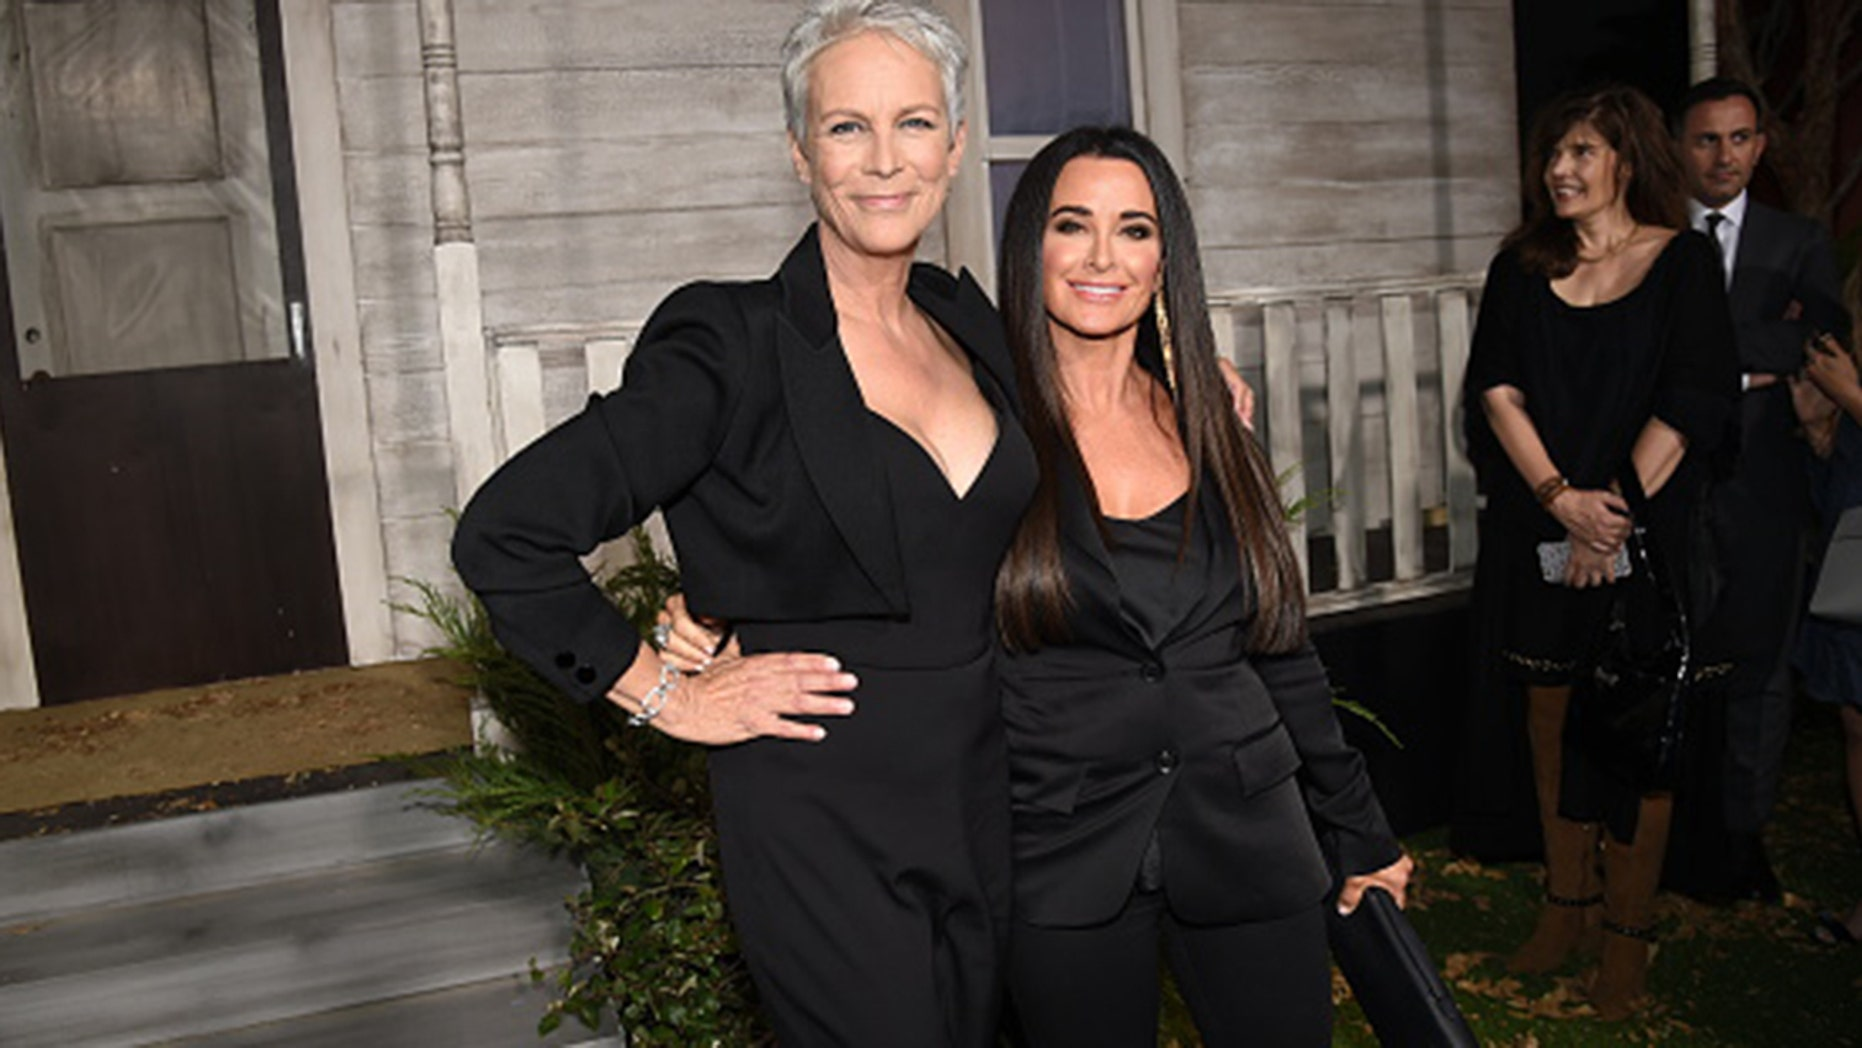 """Jamie Lee Curtis (L) and Kyle Richards attend the Universal Pictures' """"Halloween"""" premiere at TCL Chinese Theatre on October 17, 2018 in Hollywood, California. (Photo by Kevin Winter/Getty Images)"""